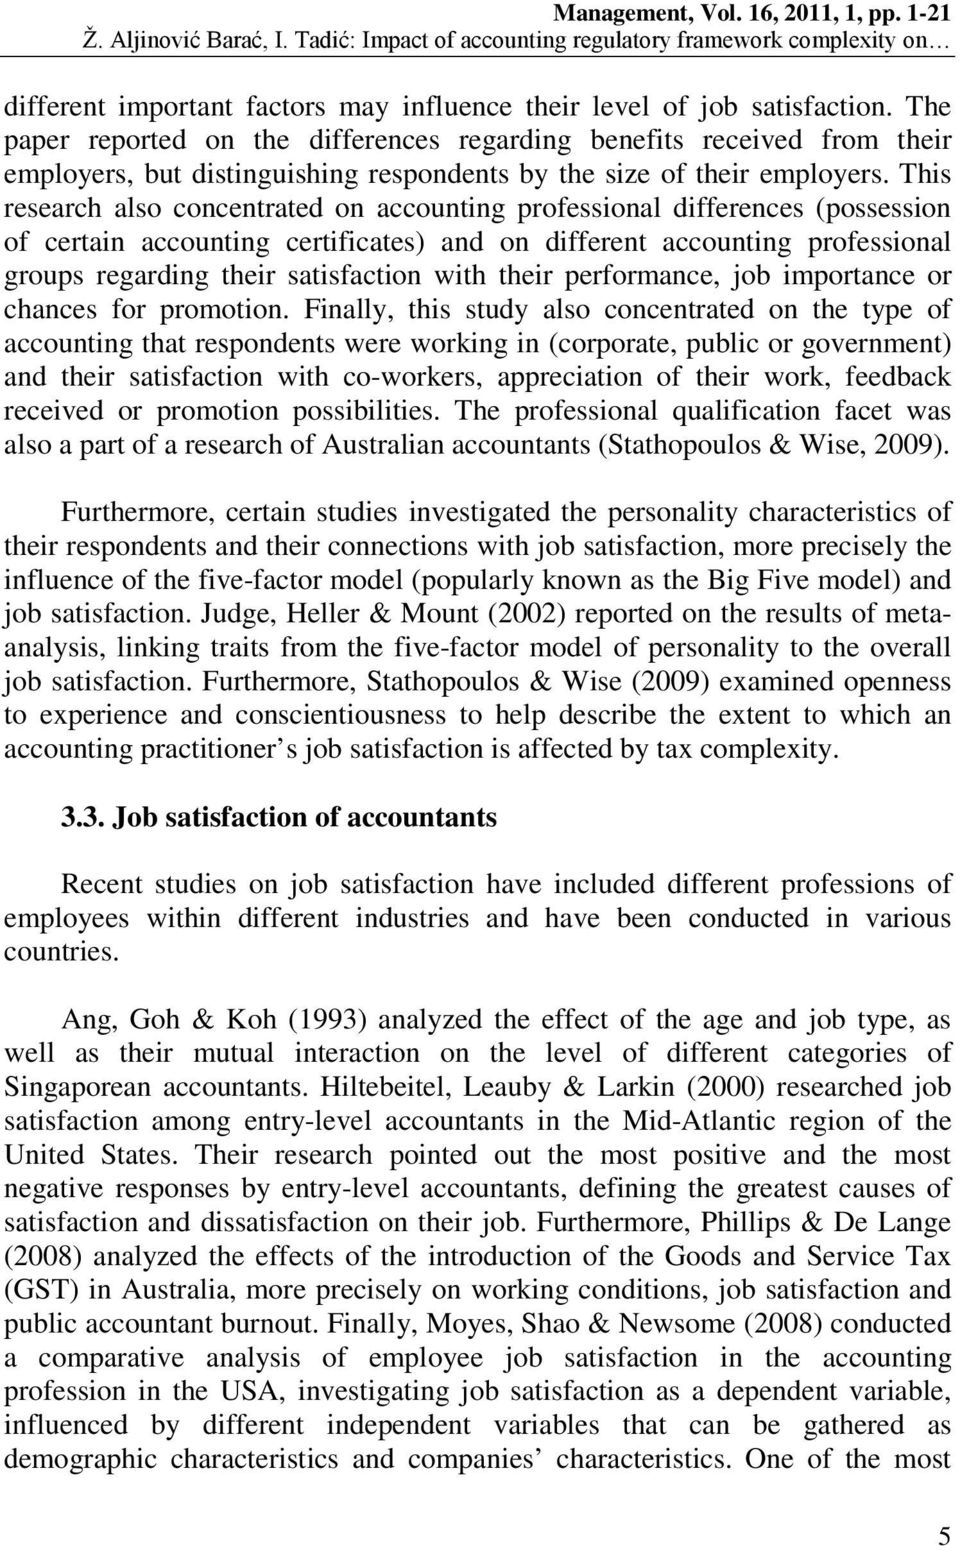 This research also concentrated on accounting professional differences (possession of certain accounting certificates) and on different accounting professional groups regarding their satisfaction